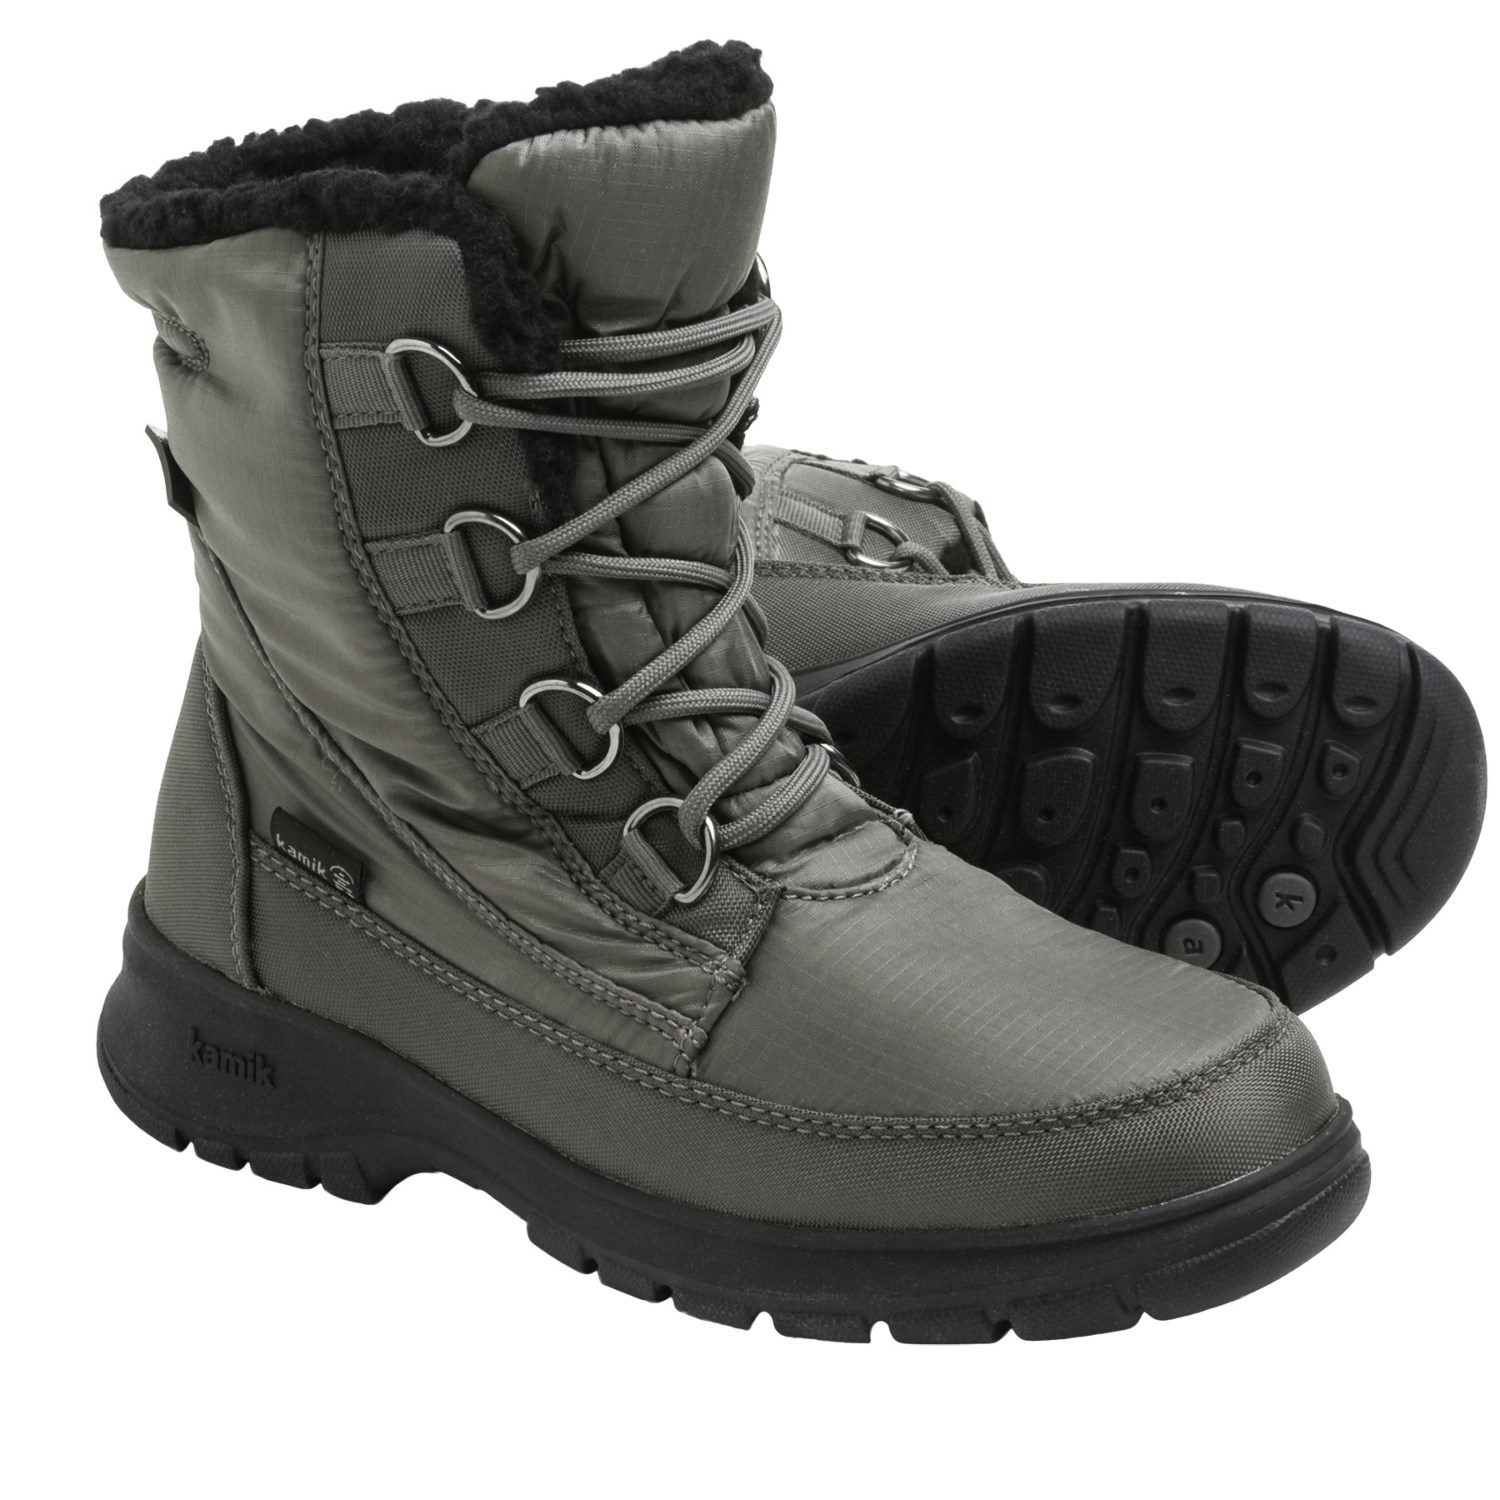 Kamik Baltimore Snow Boots (For Women) 8635A - Save 87%